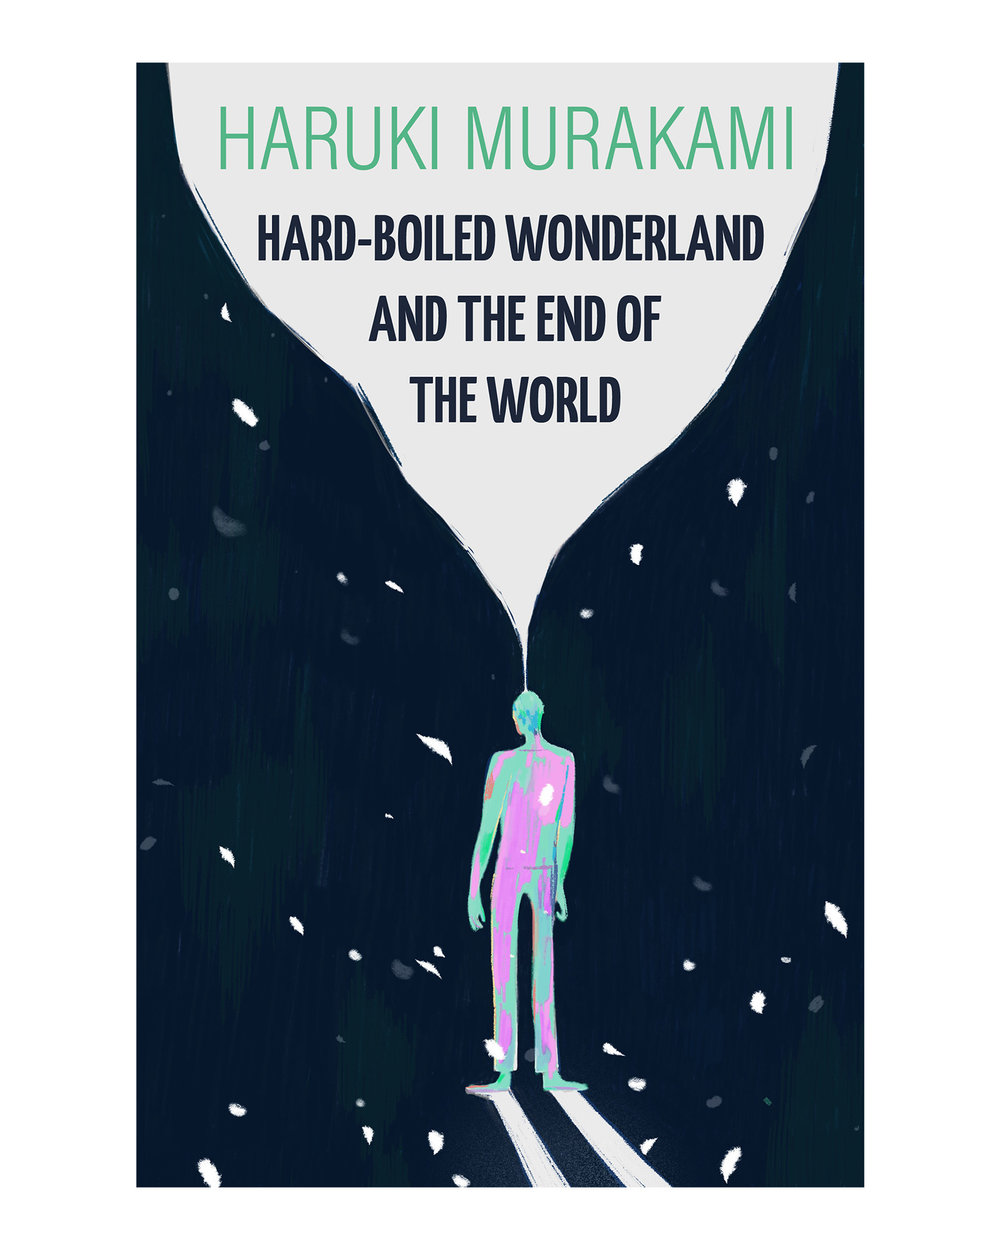 A mock book cover design for Haruki Murakami's  Hard-Boiled Wonderland and the End of the World.